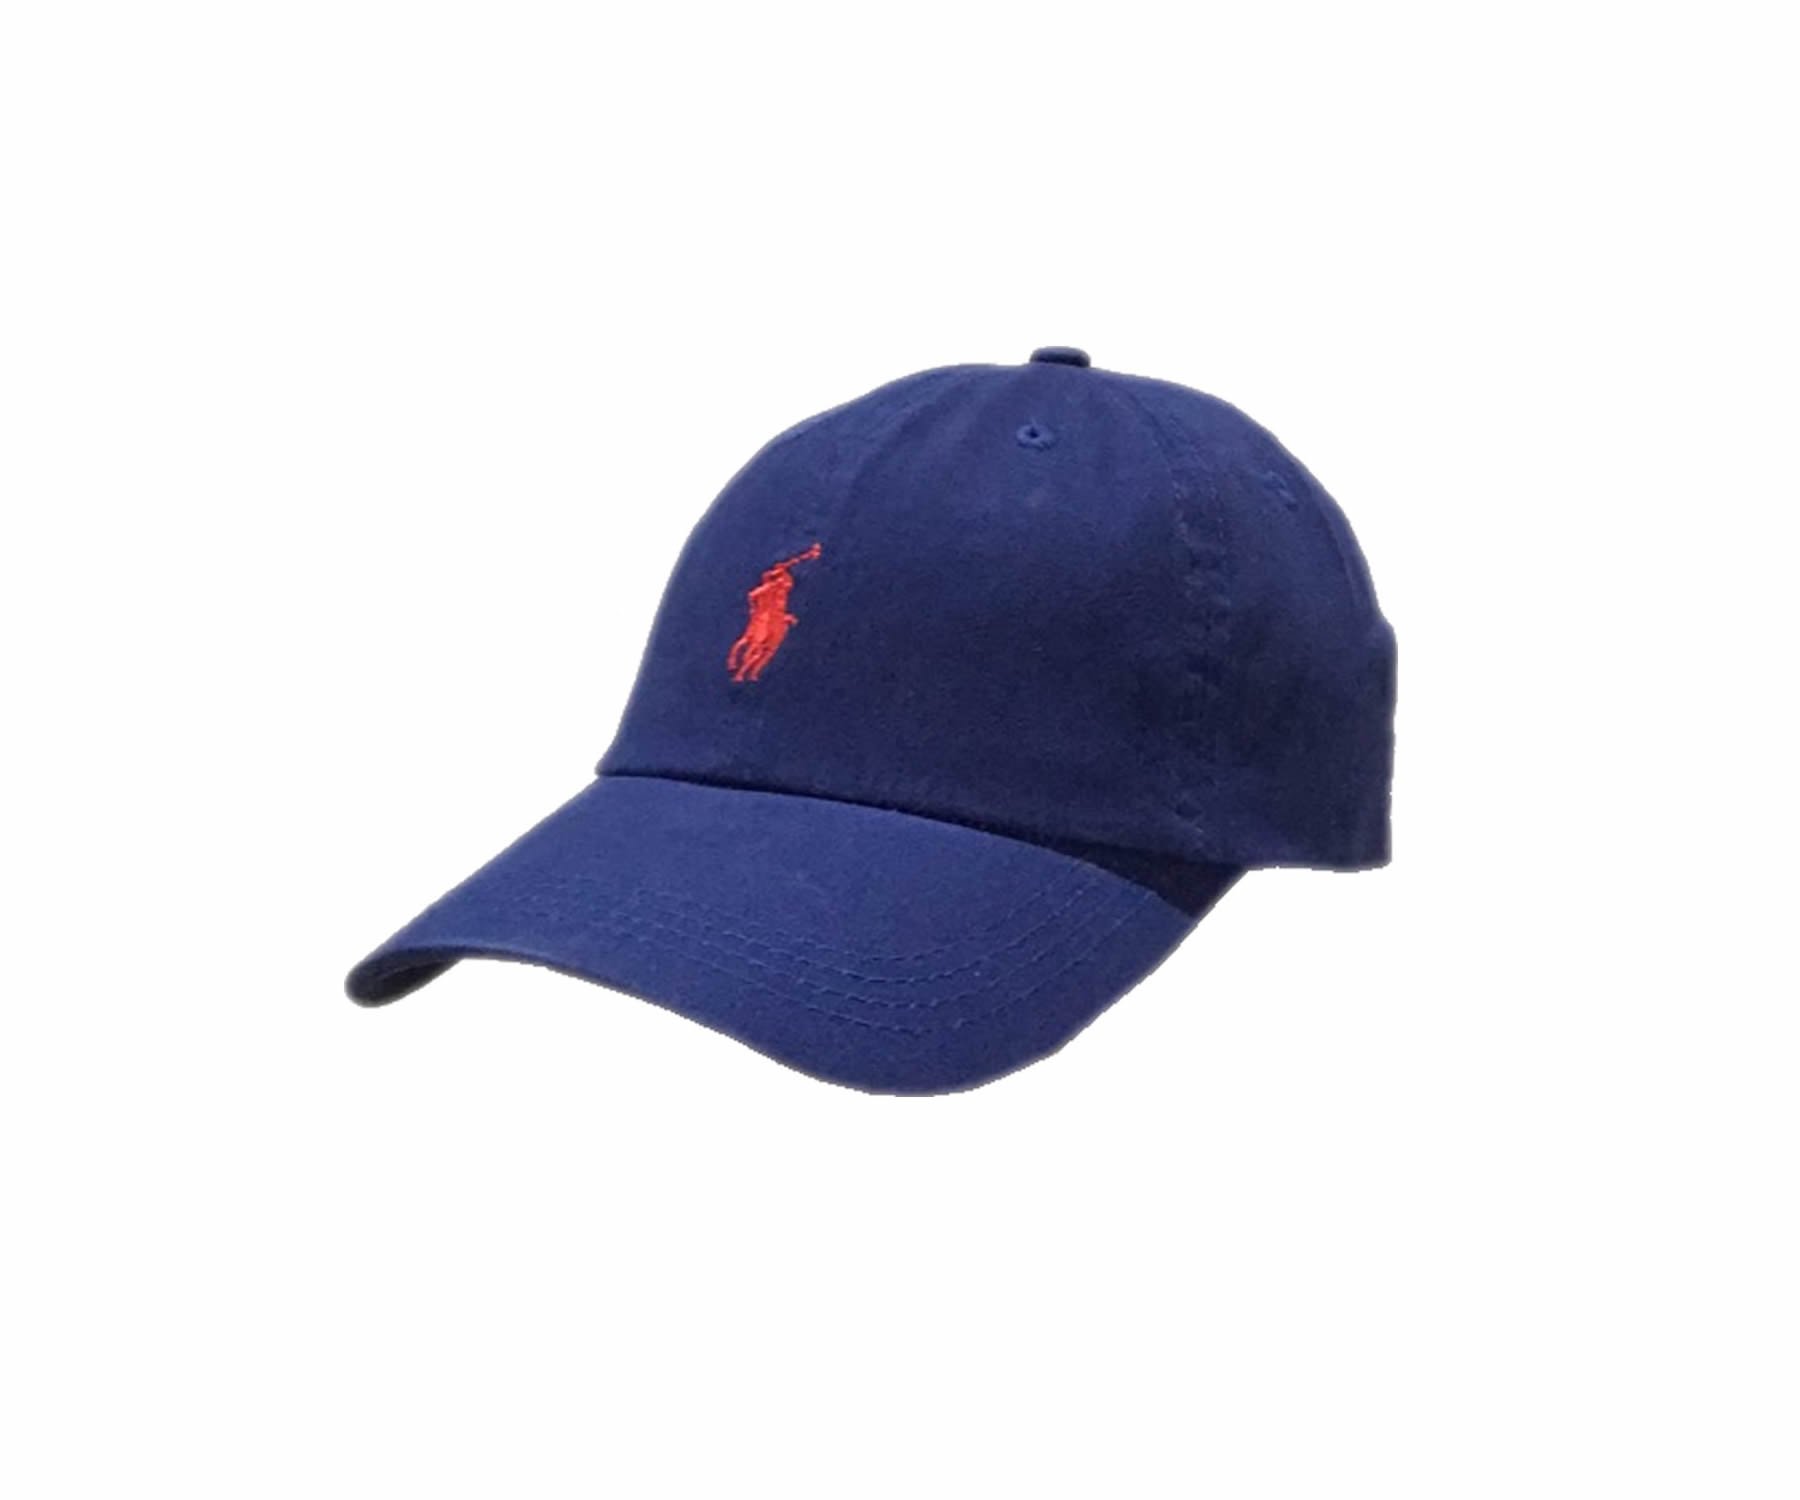 874ba079 Ralph Lauren Sports Baseball Cap in Navy Blue With Red Small Pony ...